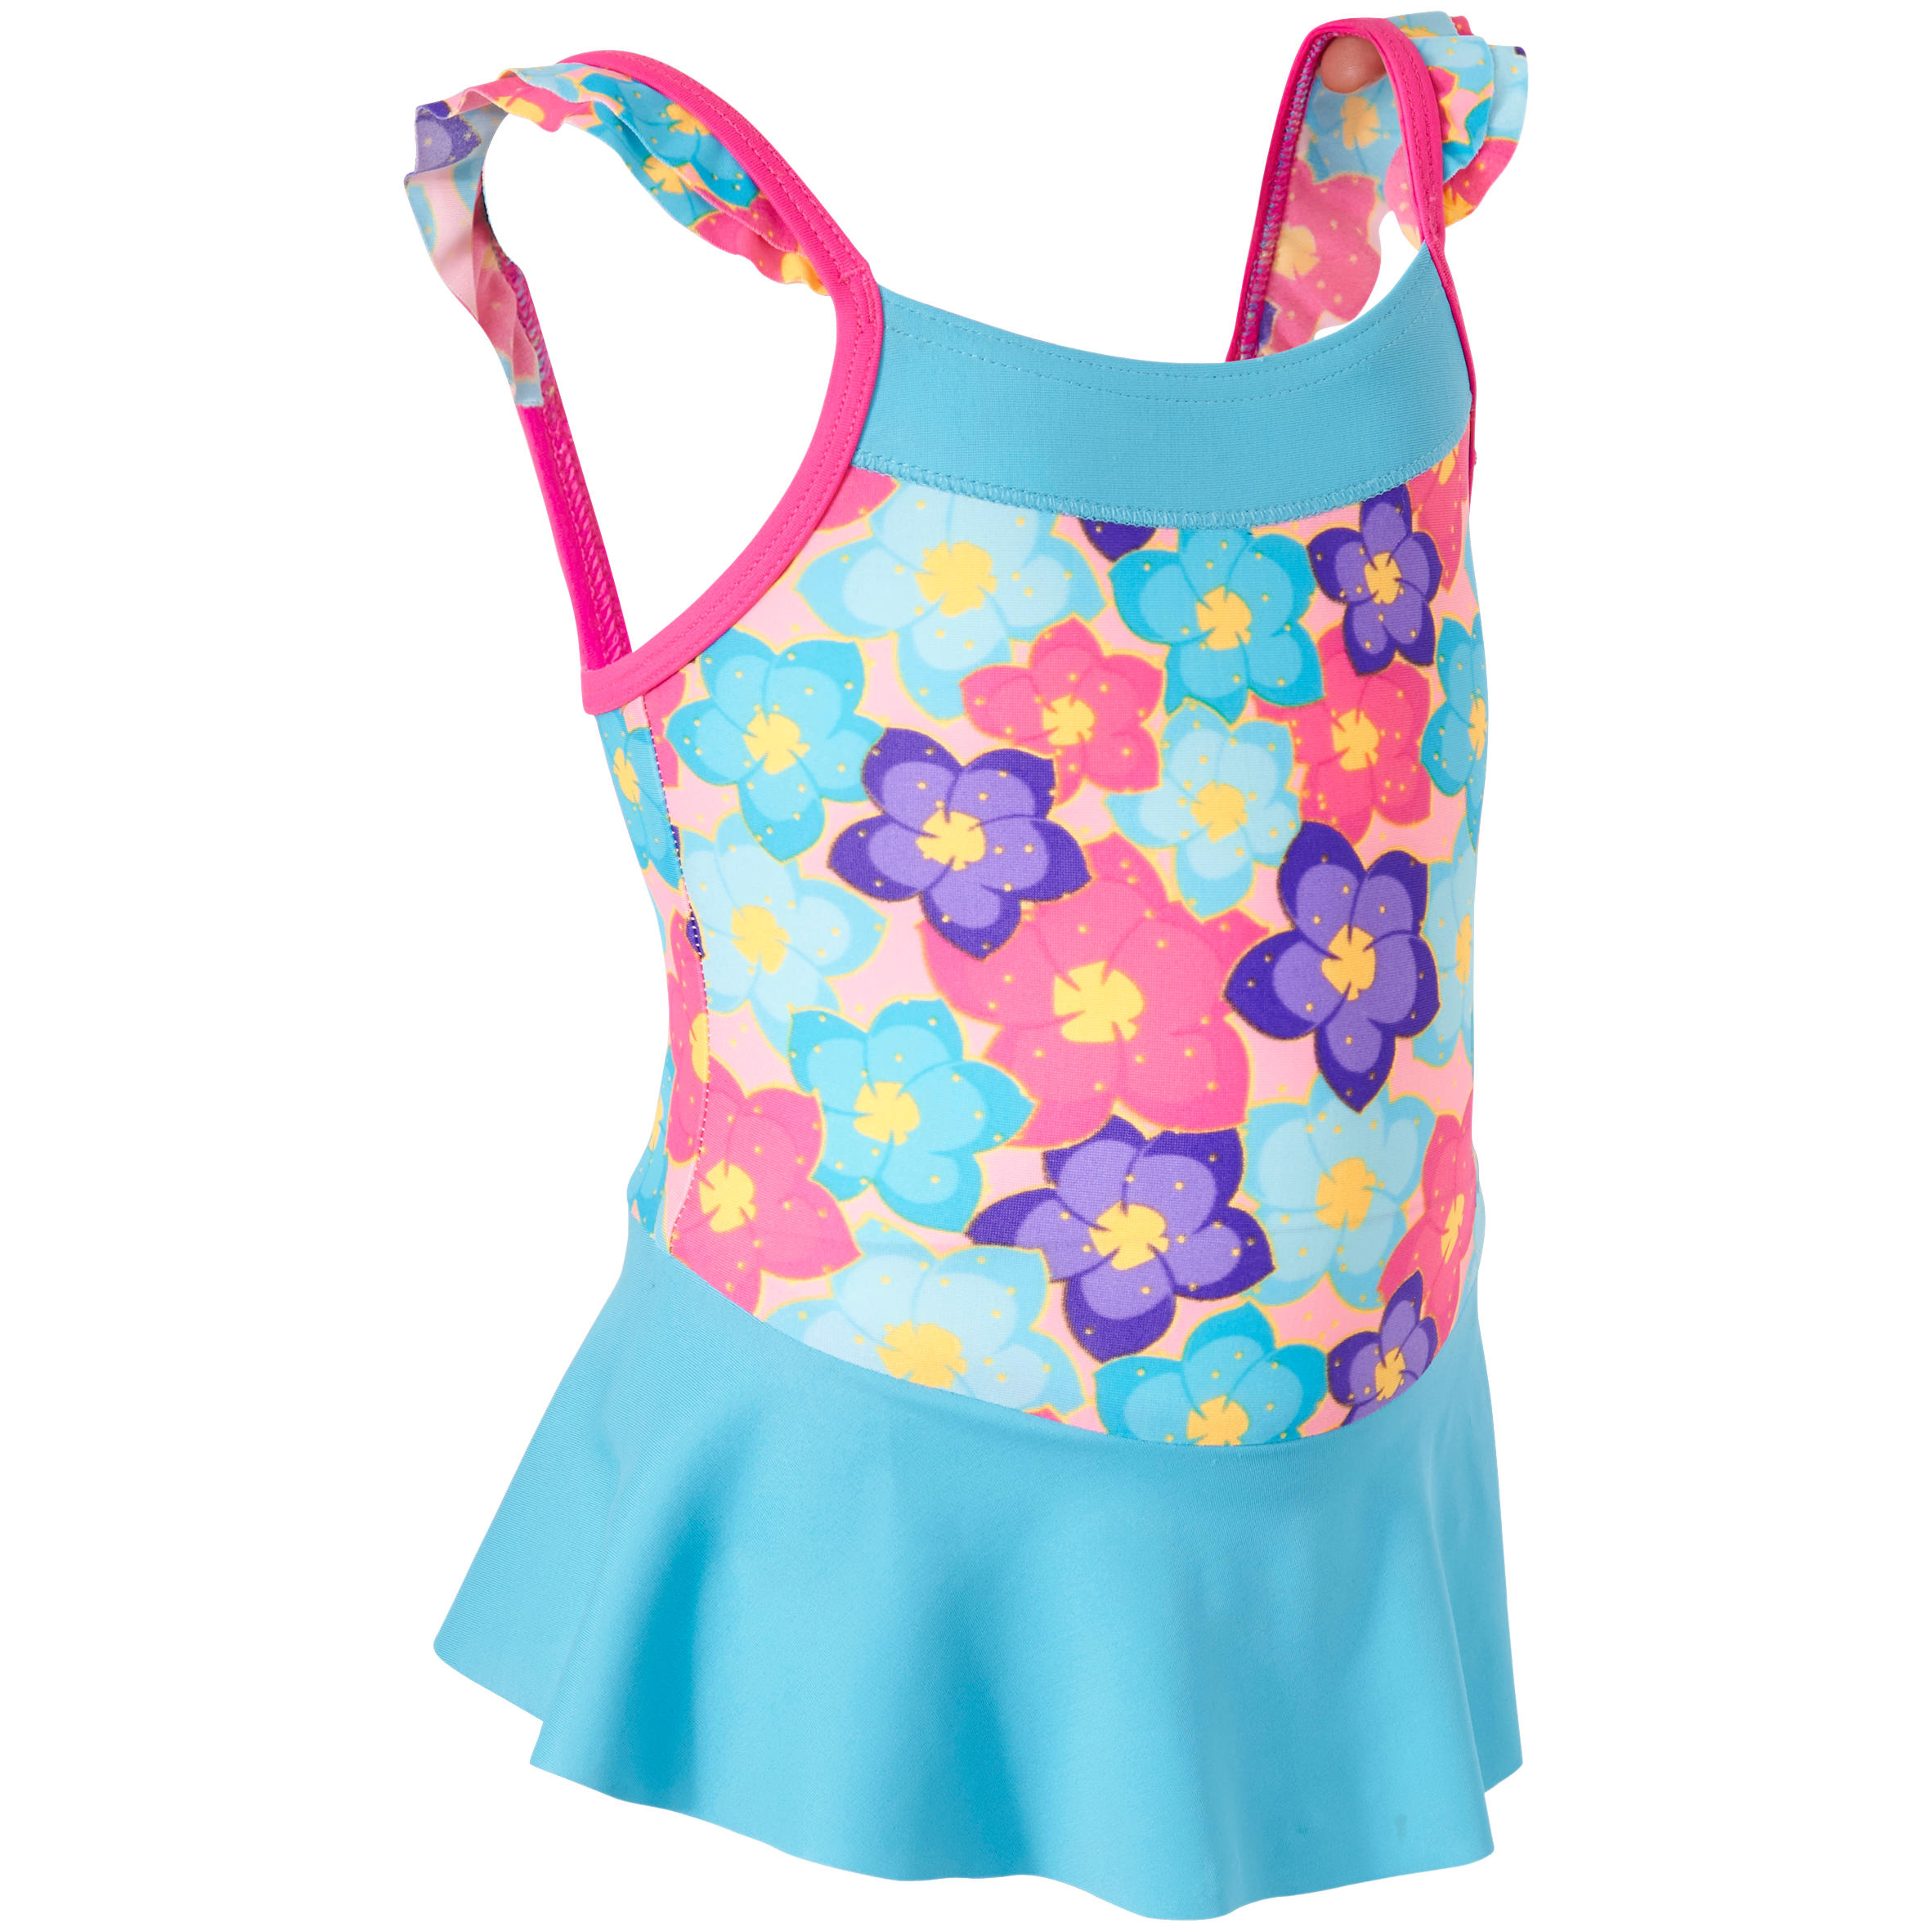 Baby girls' one-piece swimsuit with skirt flowers print